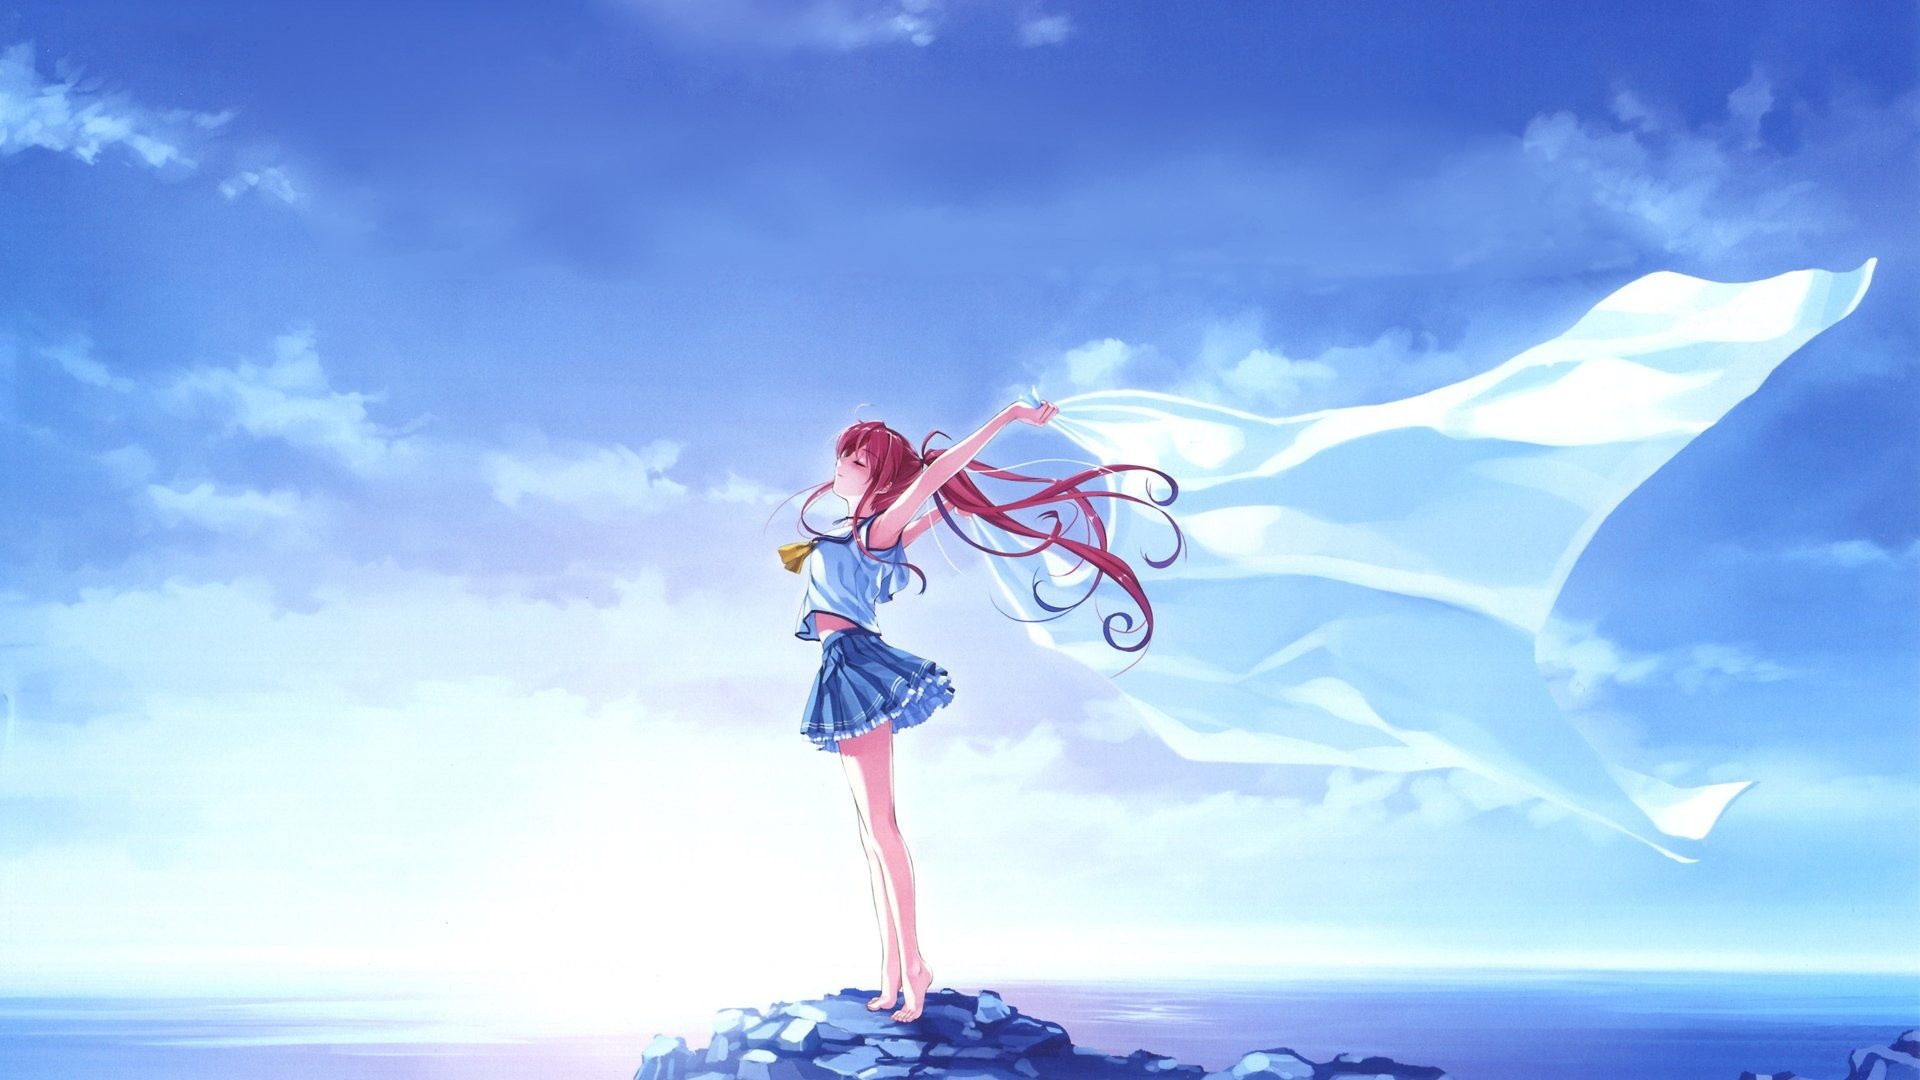 Sky Anime Blue Sky Wallpaper Background 64 Images